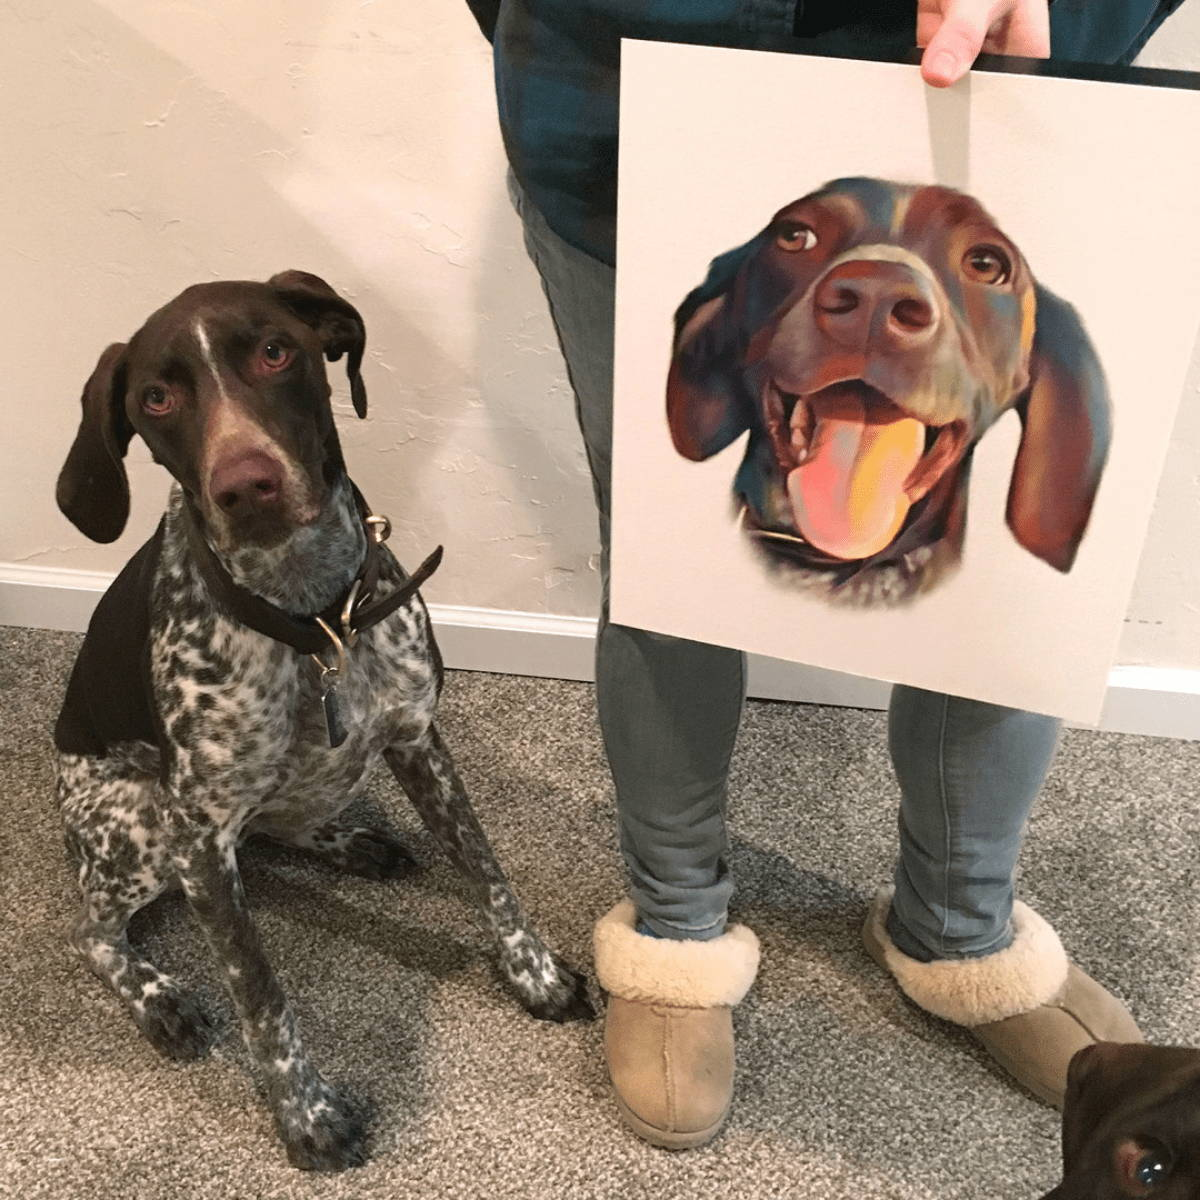 My pooch face painting with dog